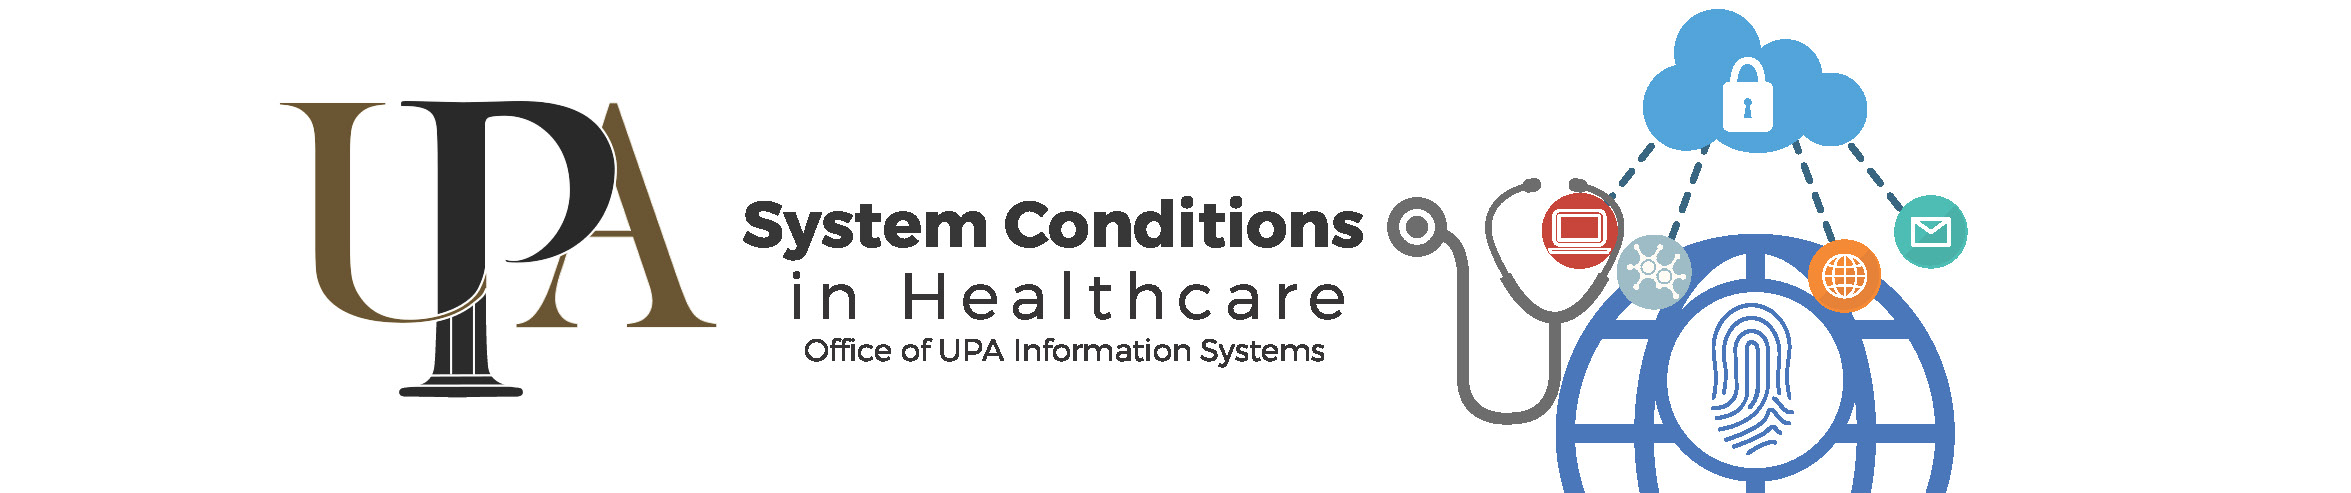 UPA Information Systems